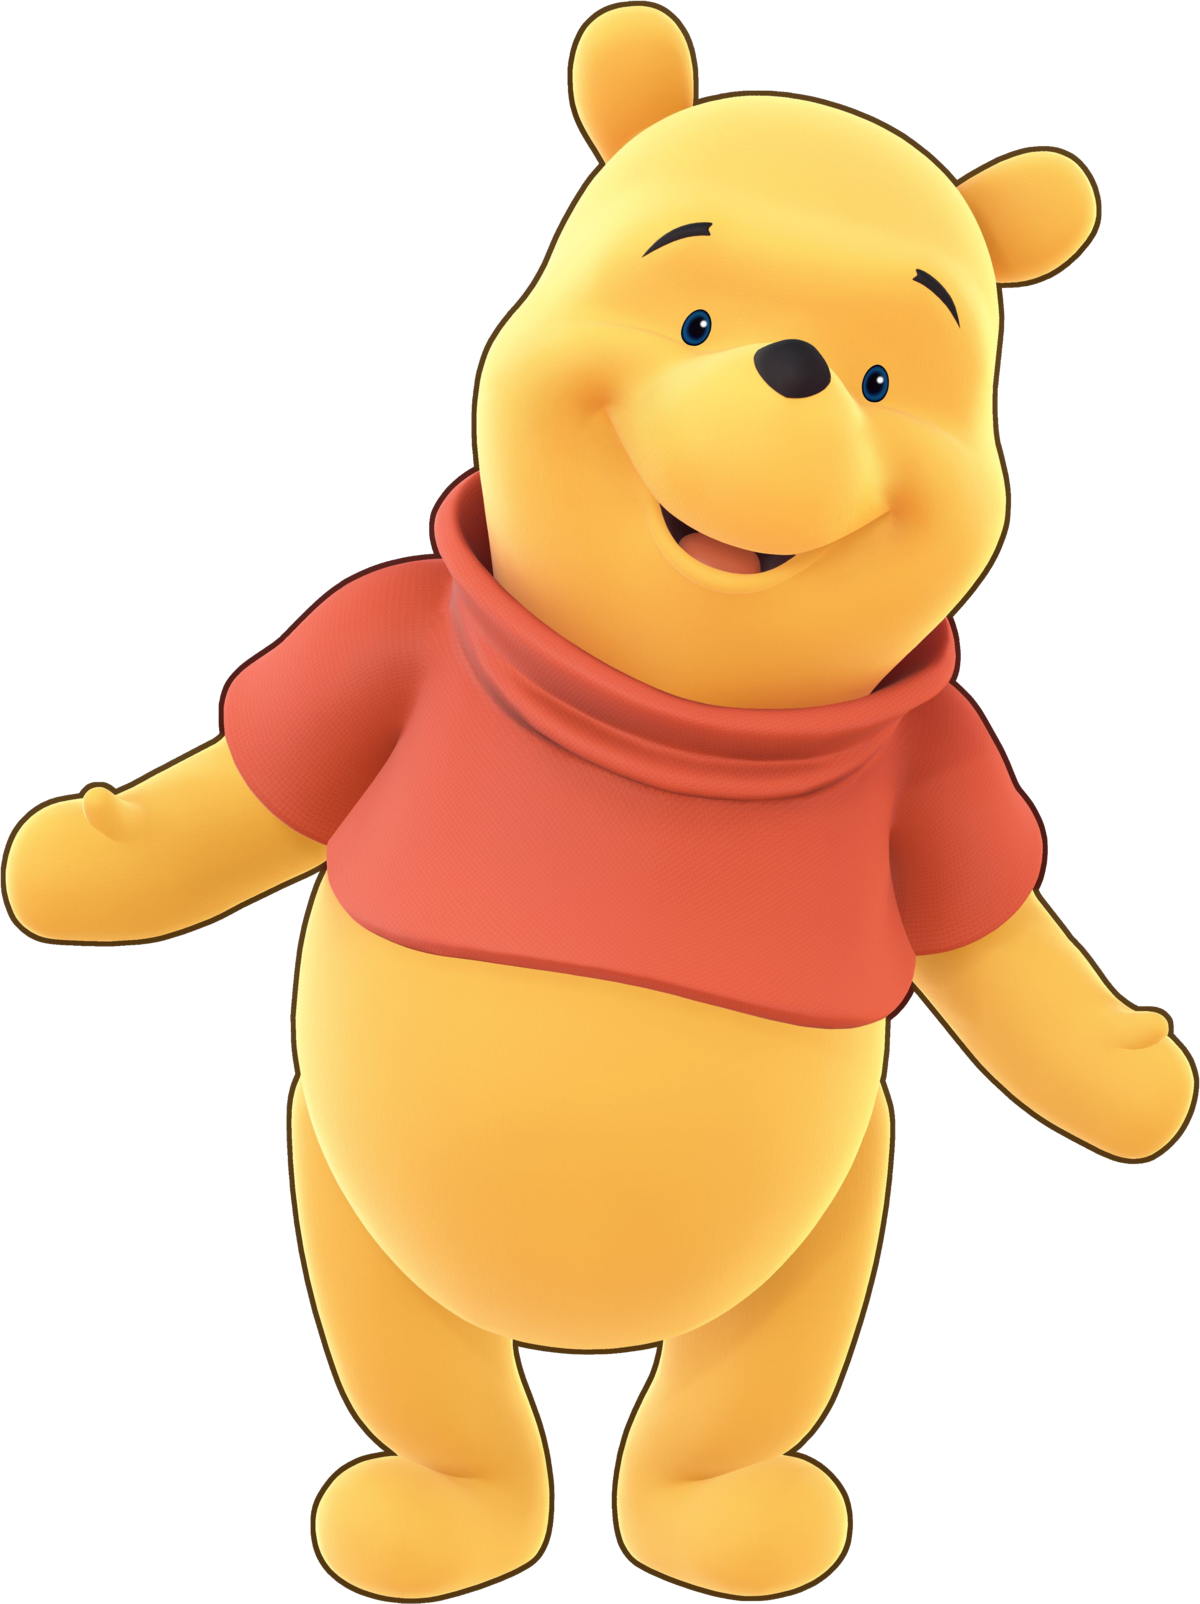 It's just a photo of Accomplished Pics of Winnie the Poo